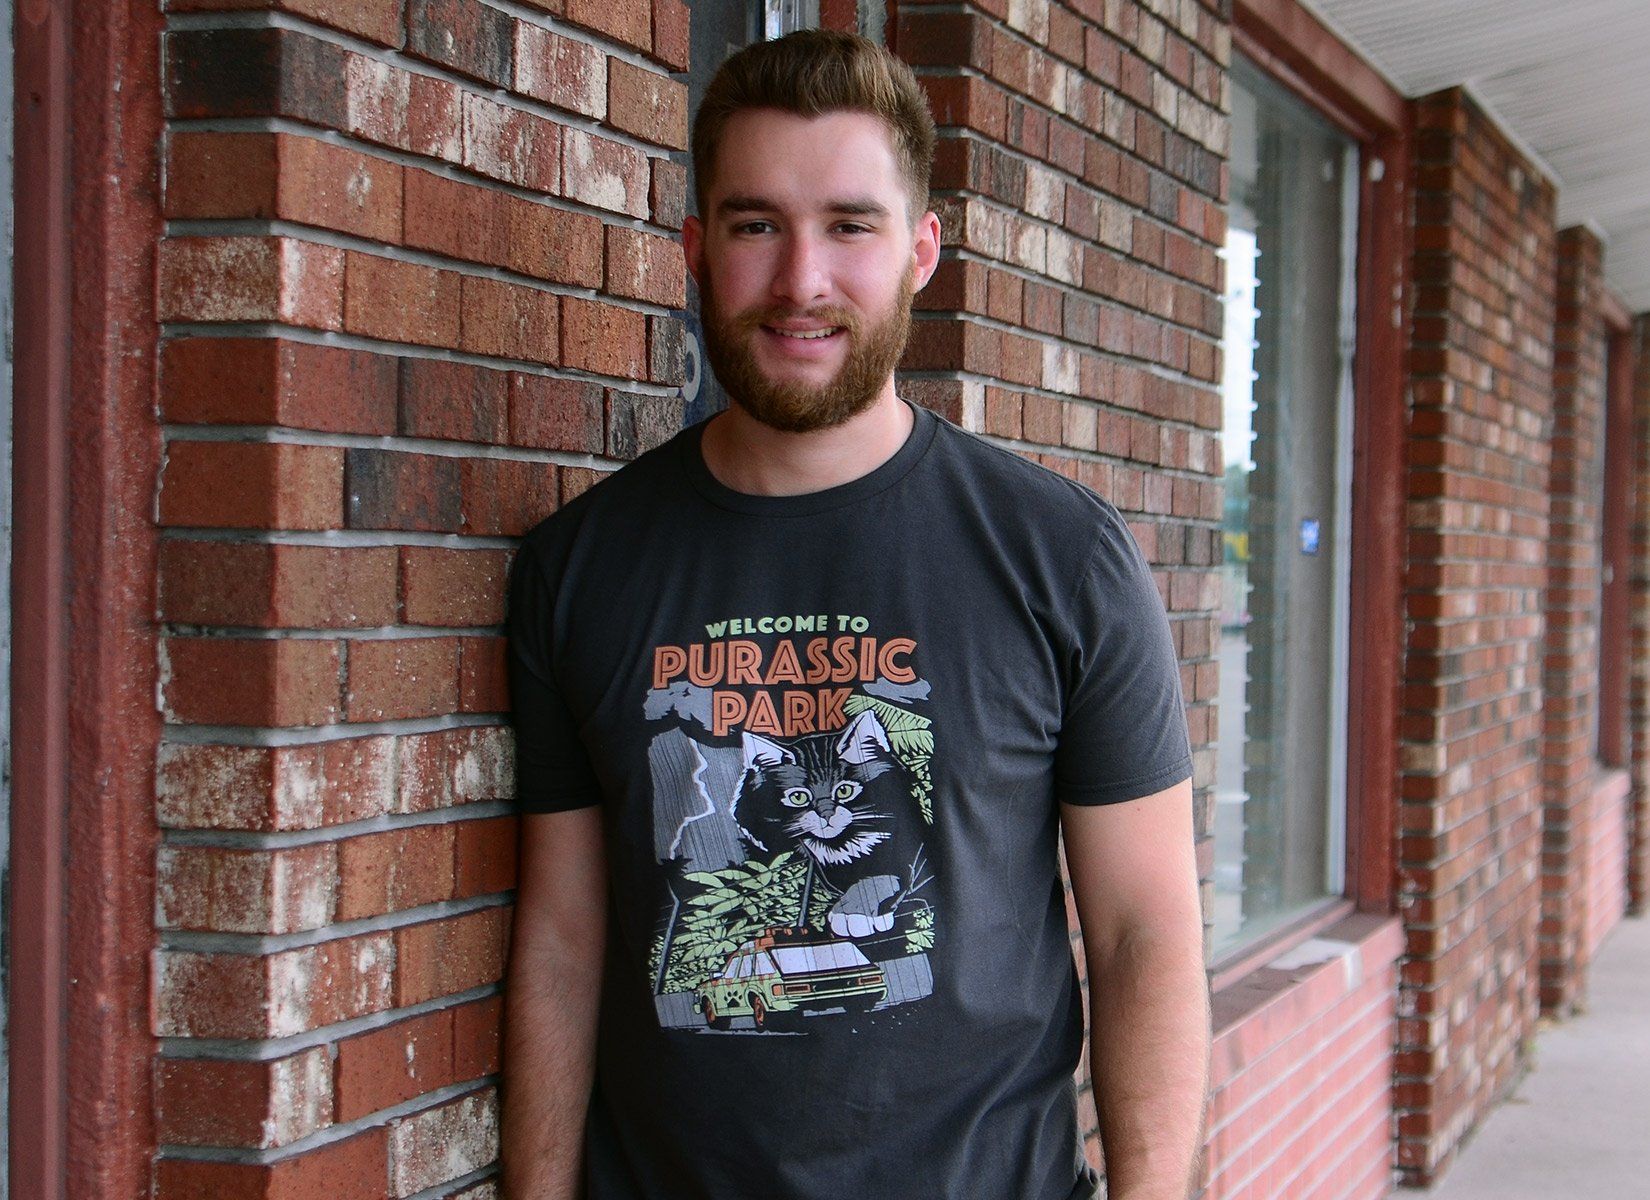 Purassic Park on Mens T-Shirt